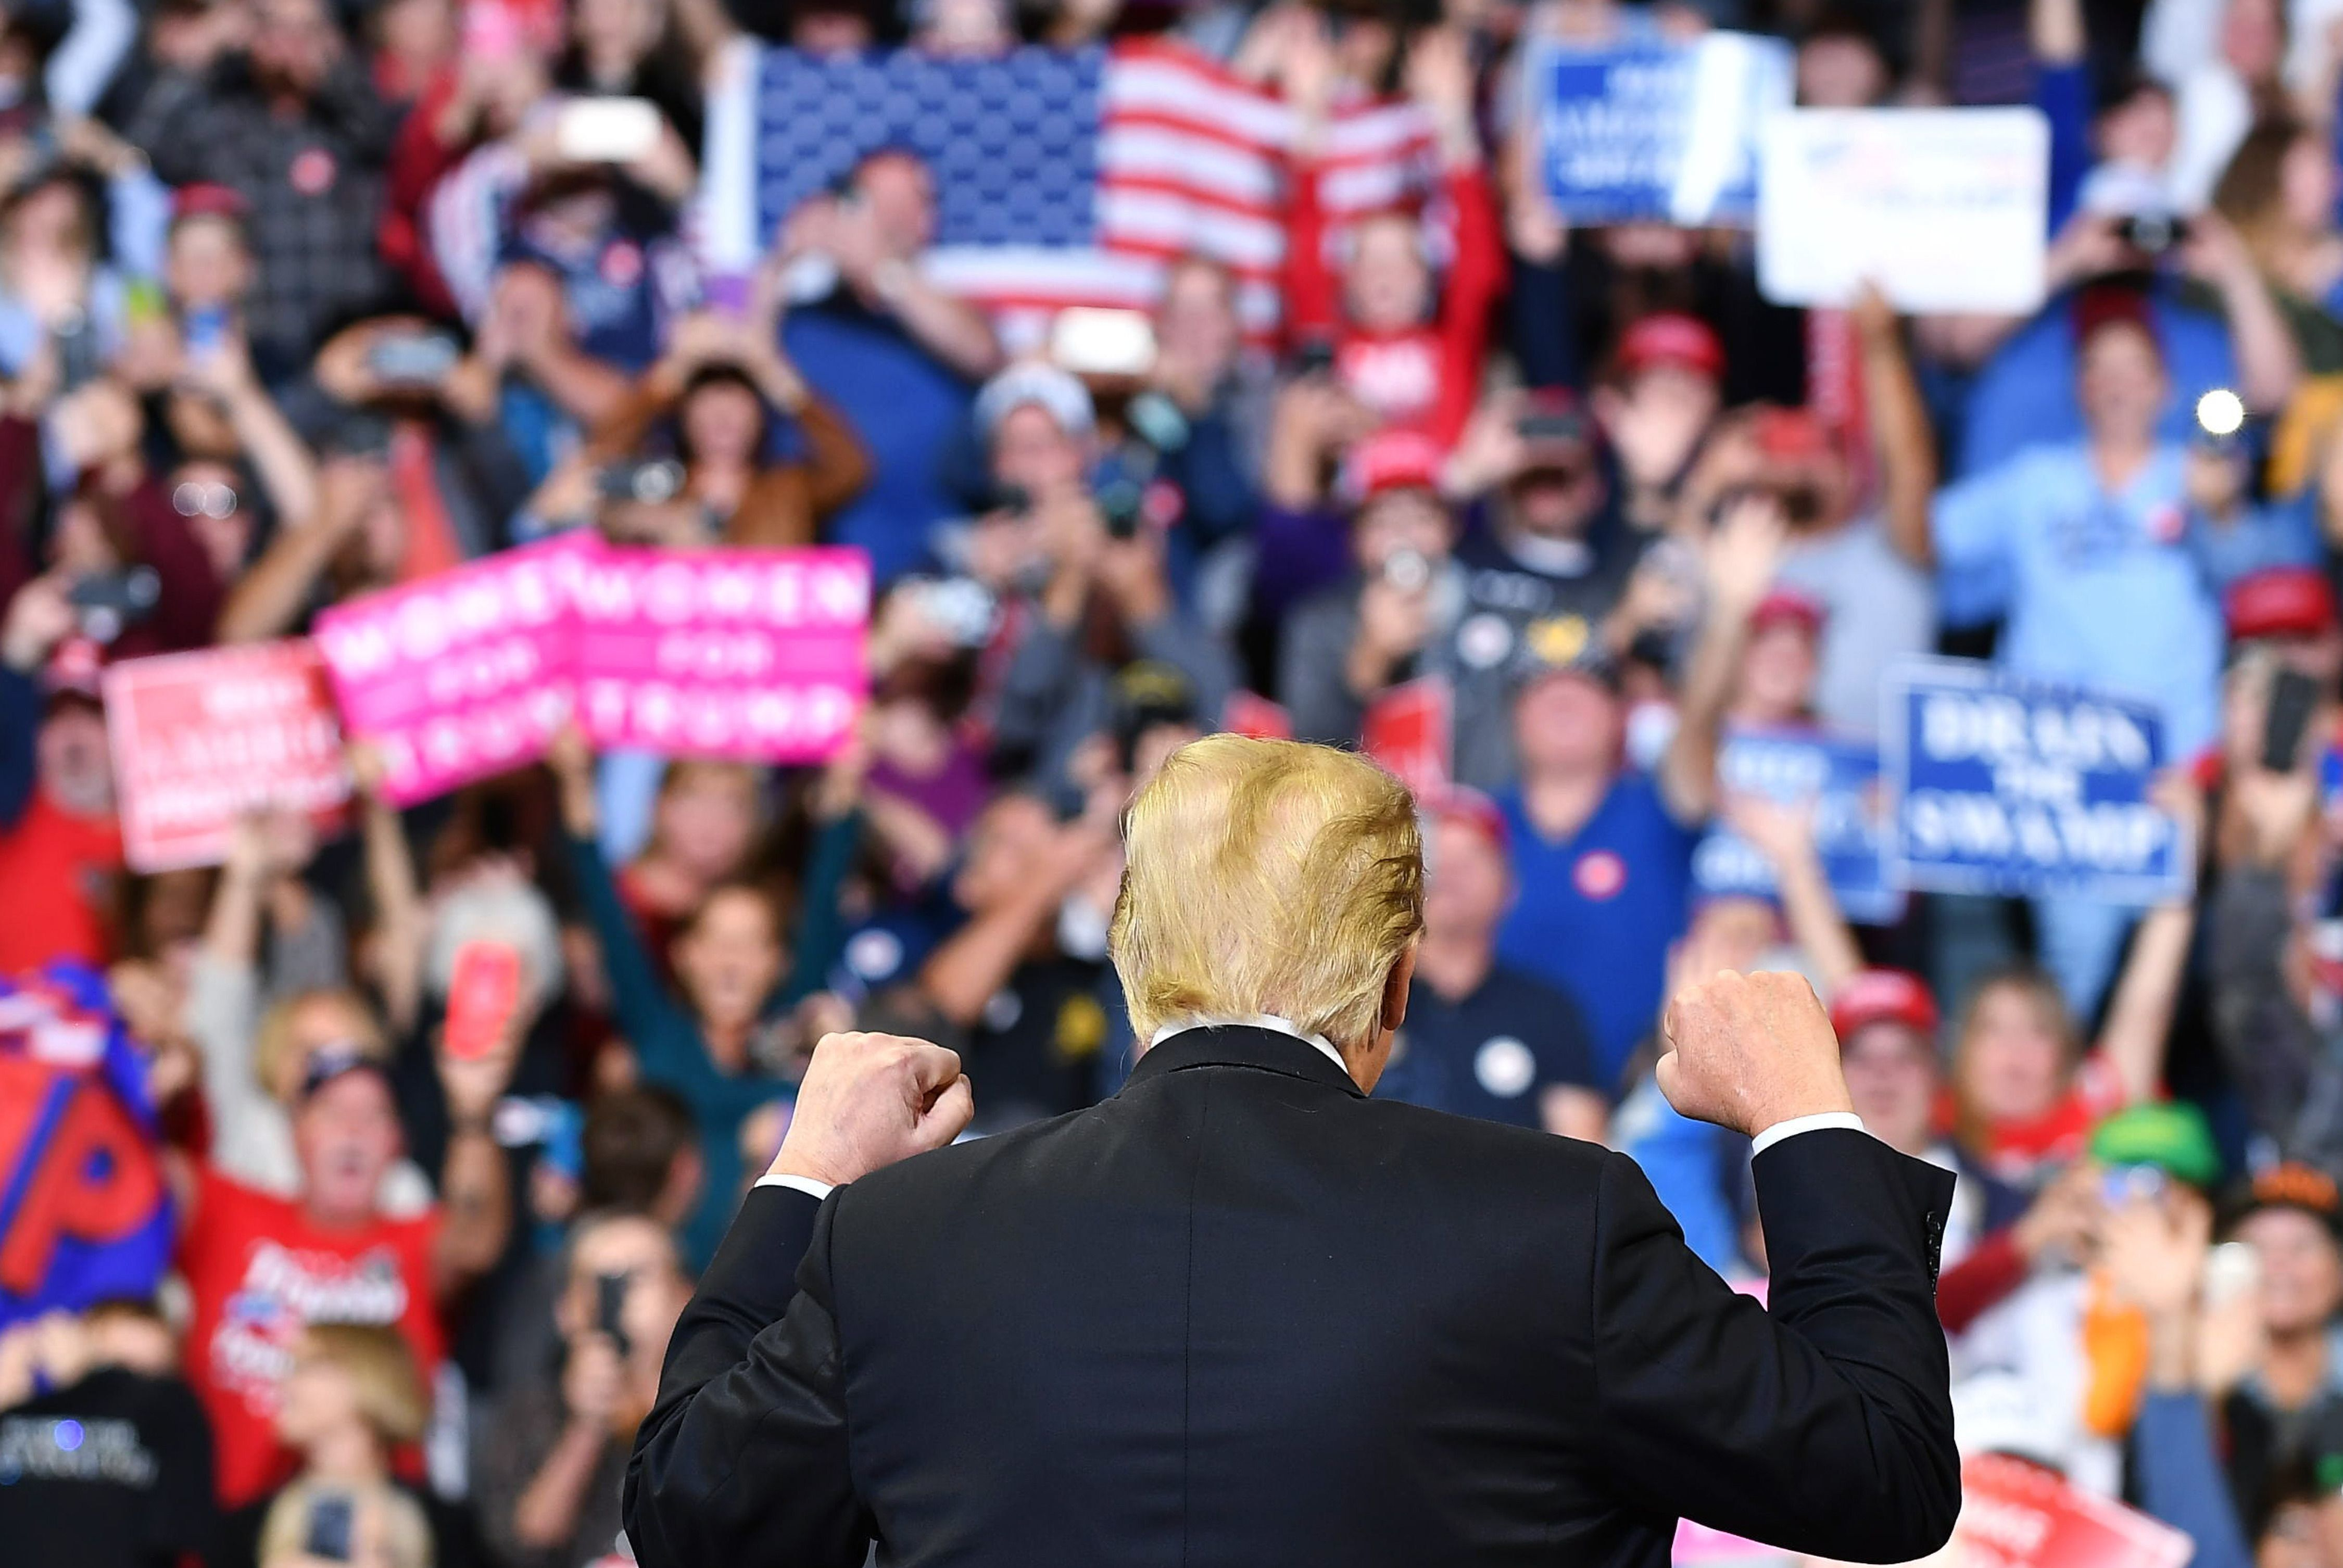 US President Donald Trump speaks during a rally at the Mid-America Center in Council Bluffs, Iowa on October 9, 2018. (Photo by MANDEL NGAN / AFP)        (Photo credit should read MANDEL NGAN/AFP/Getty Images)